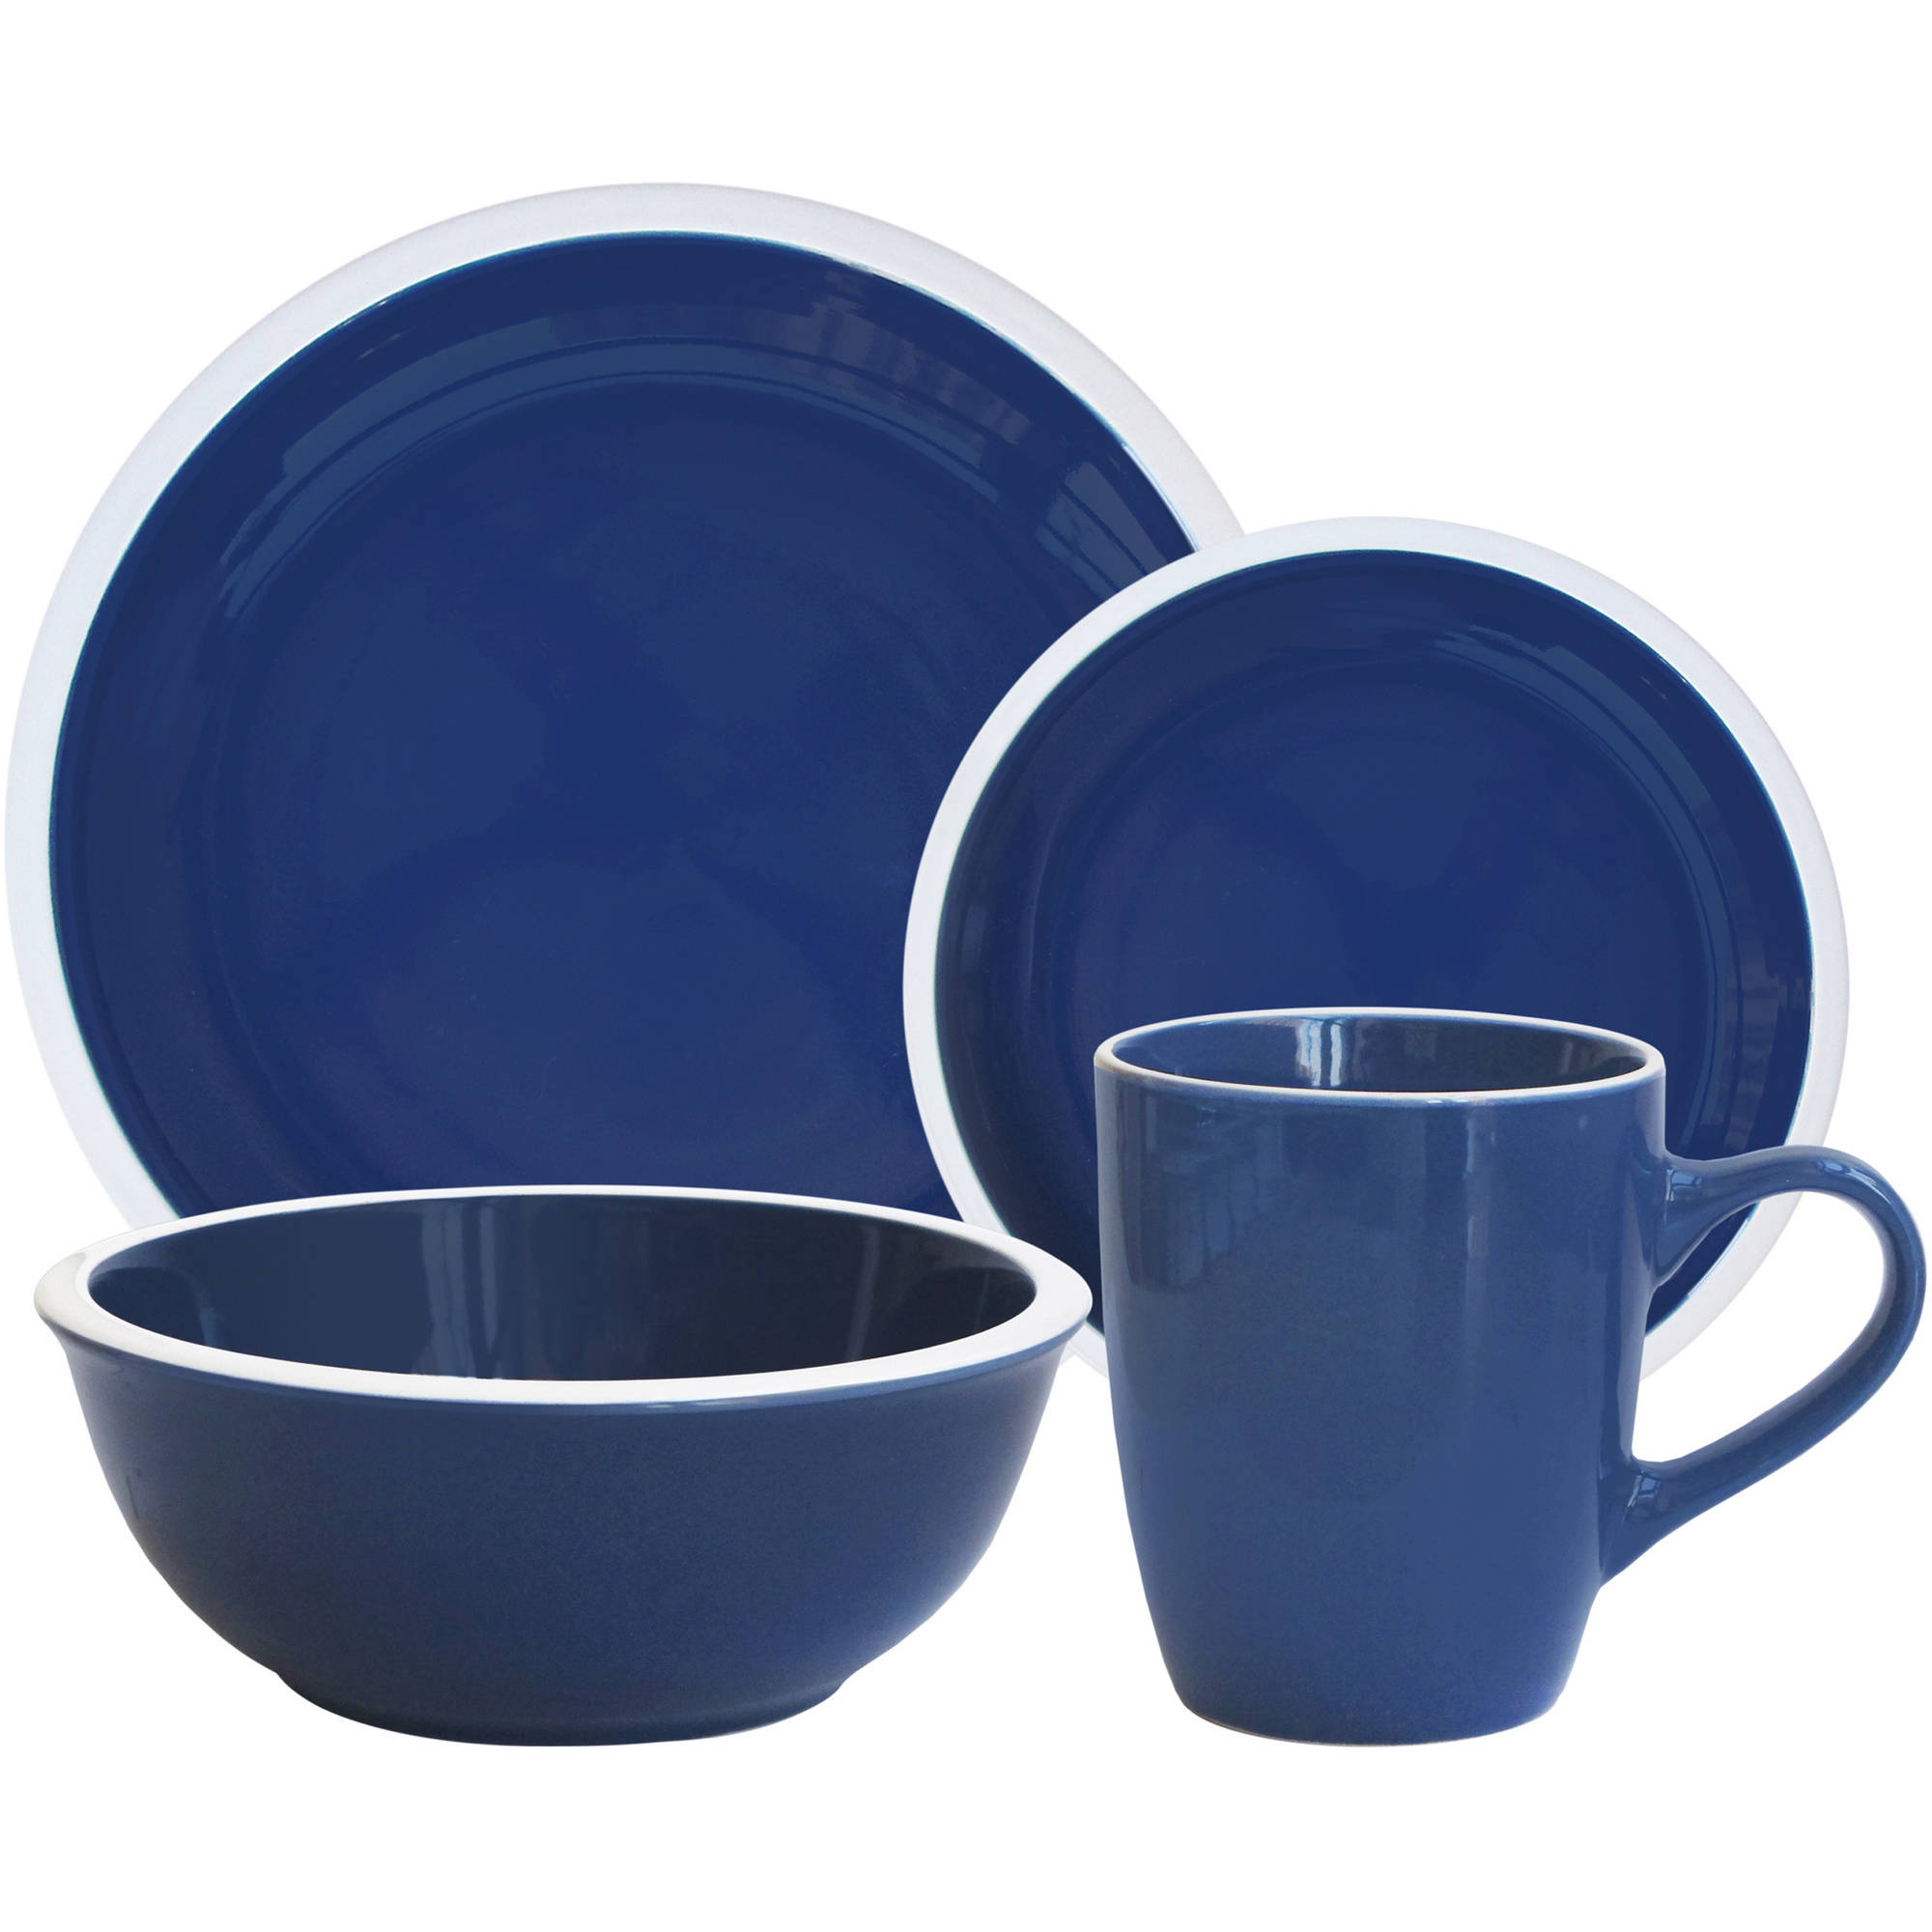 In select stores and online you can also get this Mainstays u0027 ...  sc 1 st  Holiday Deals and More.com & 16 pc Mainstays Hadleigh Dinnerware Set beginning at $17.00 at ...